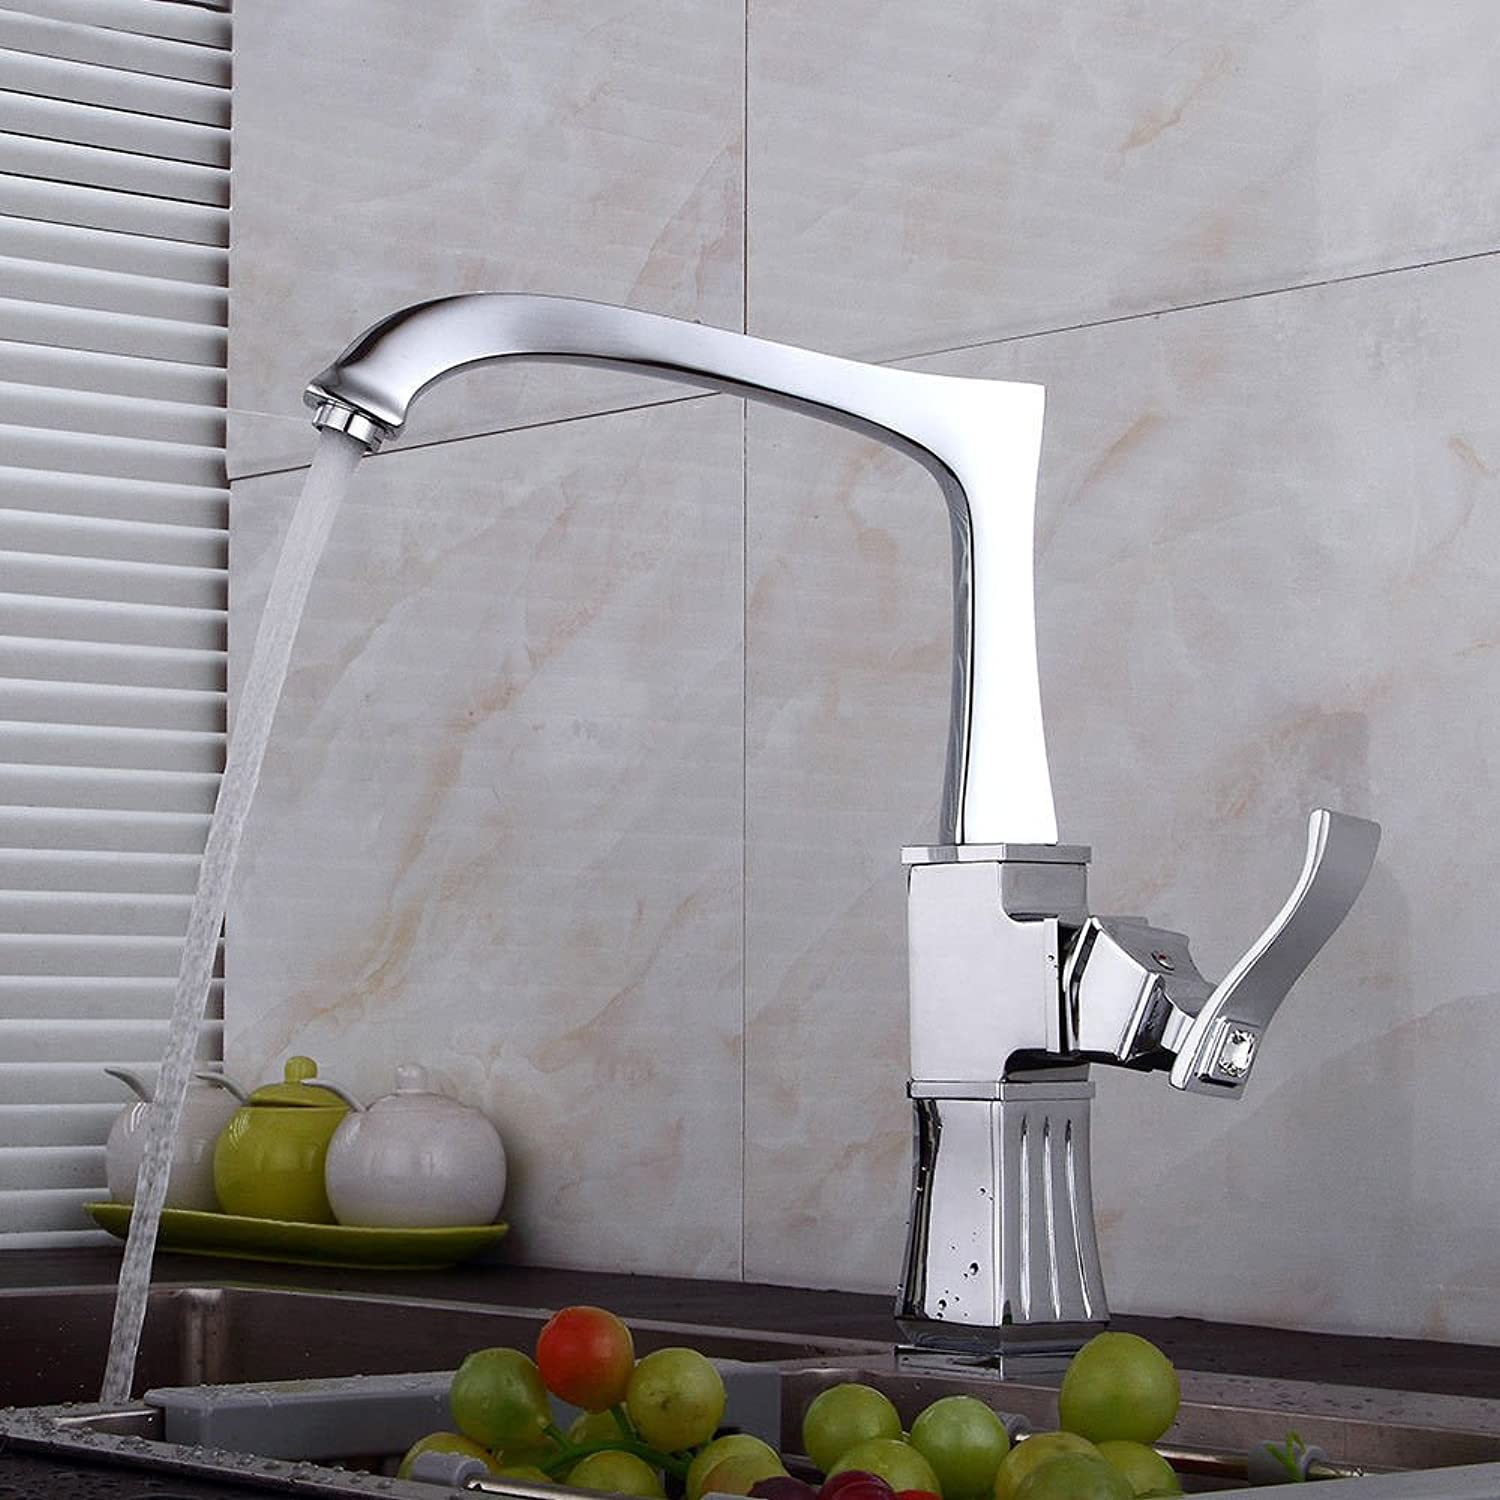 Bijjaladeva Antique Kitchen Sink Mixer Tap The Copper Kitchen Faucet Antique Mixing of hot and Cold Water Valve Brushed Faucet Black Square 360° Swivel Single Handle fauc